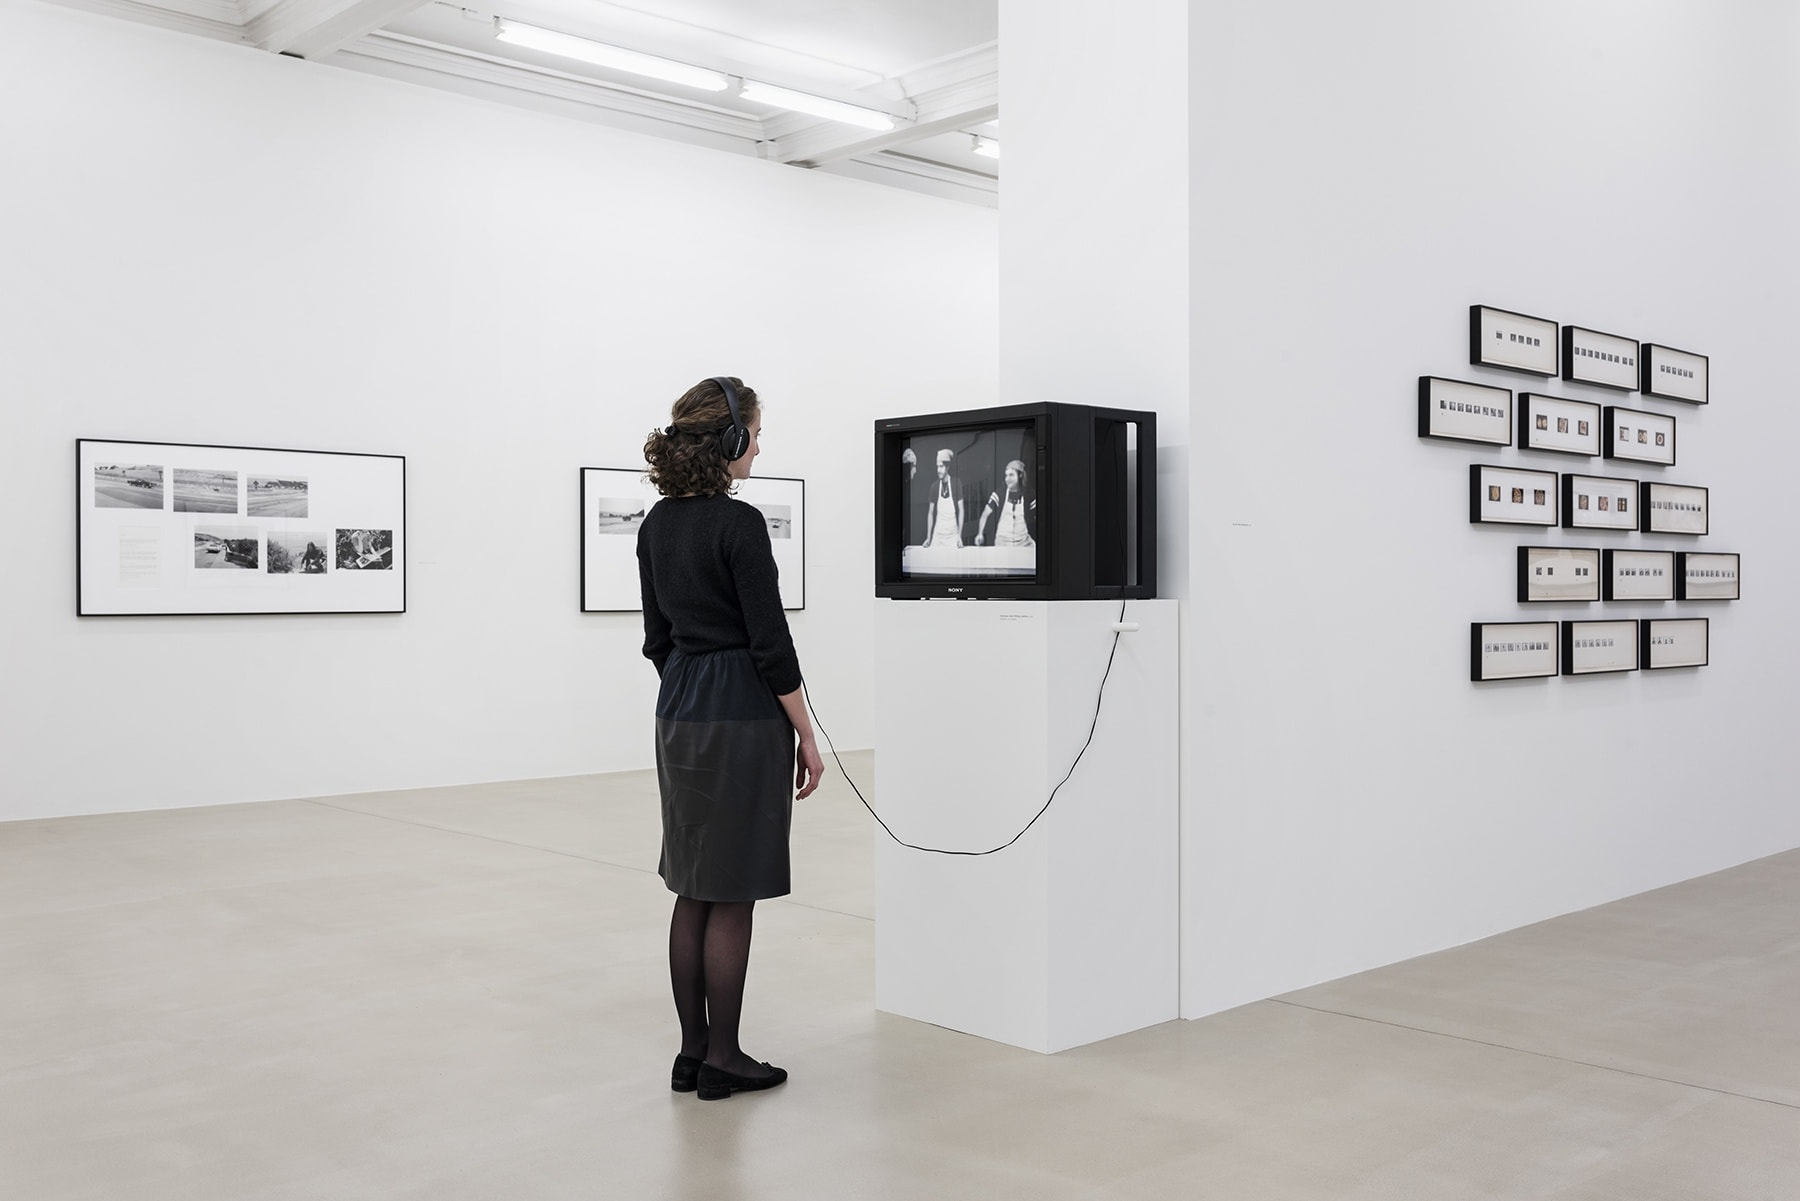 A person with headphones watches content on a cathode-ray tube tv displayed on a pedestal, surrounded by several black and white photographs on walls.